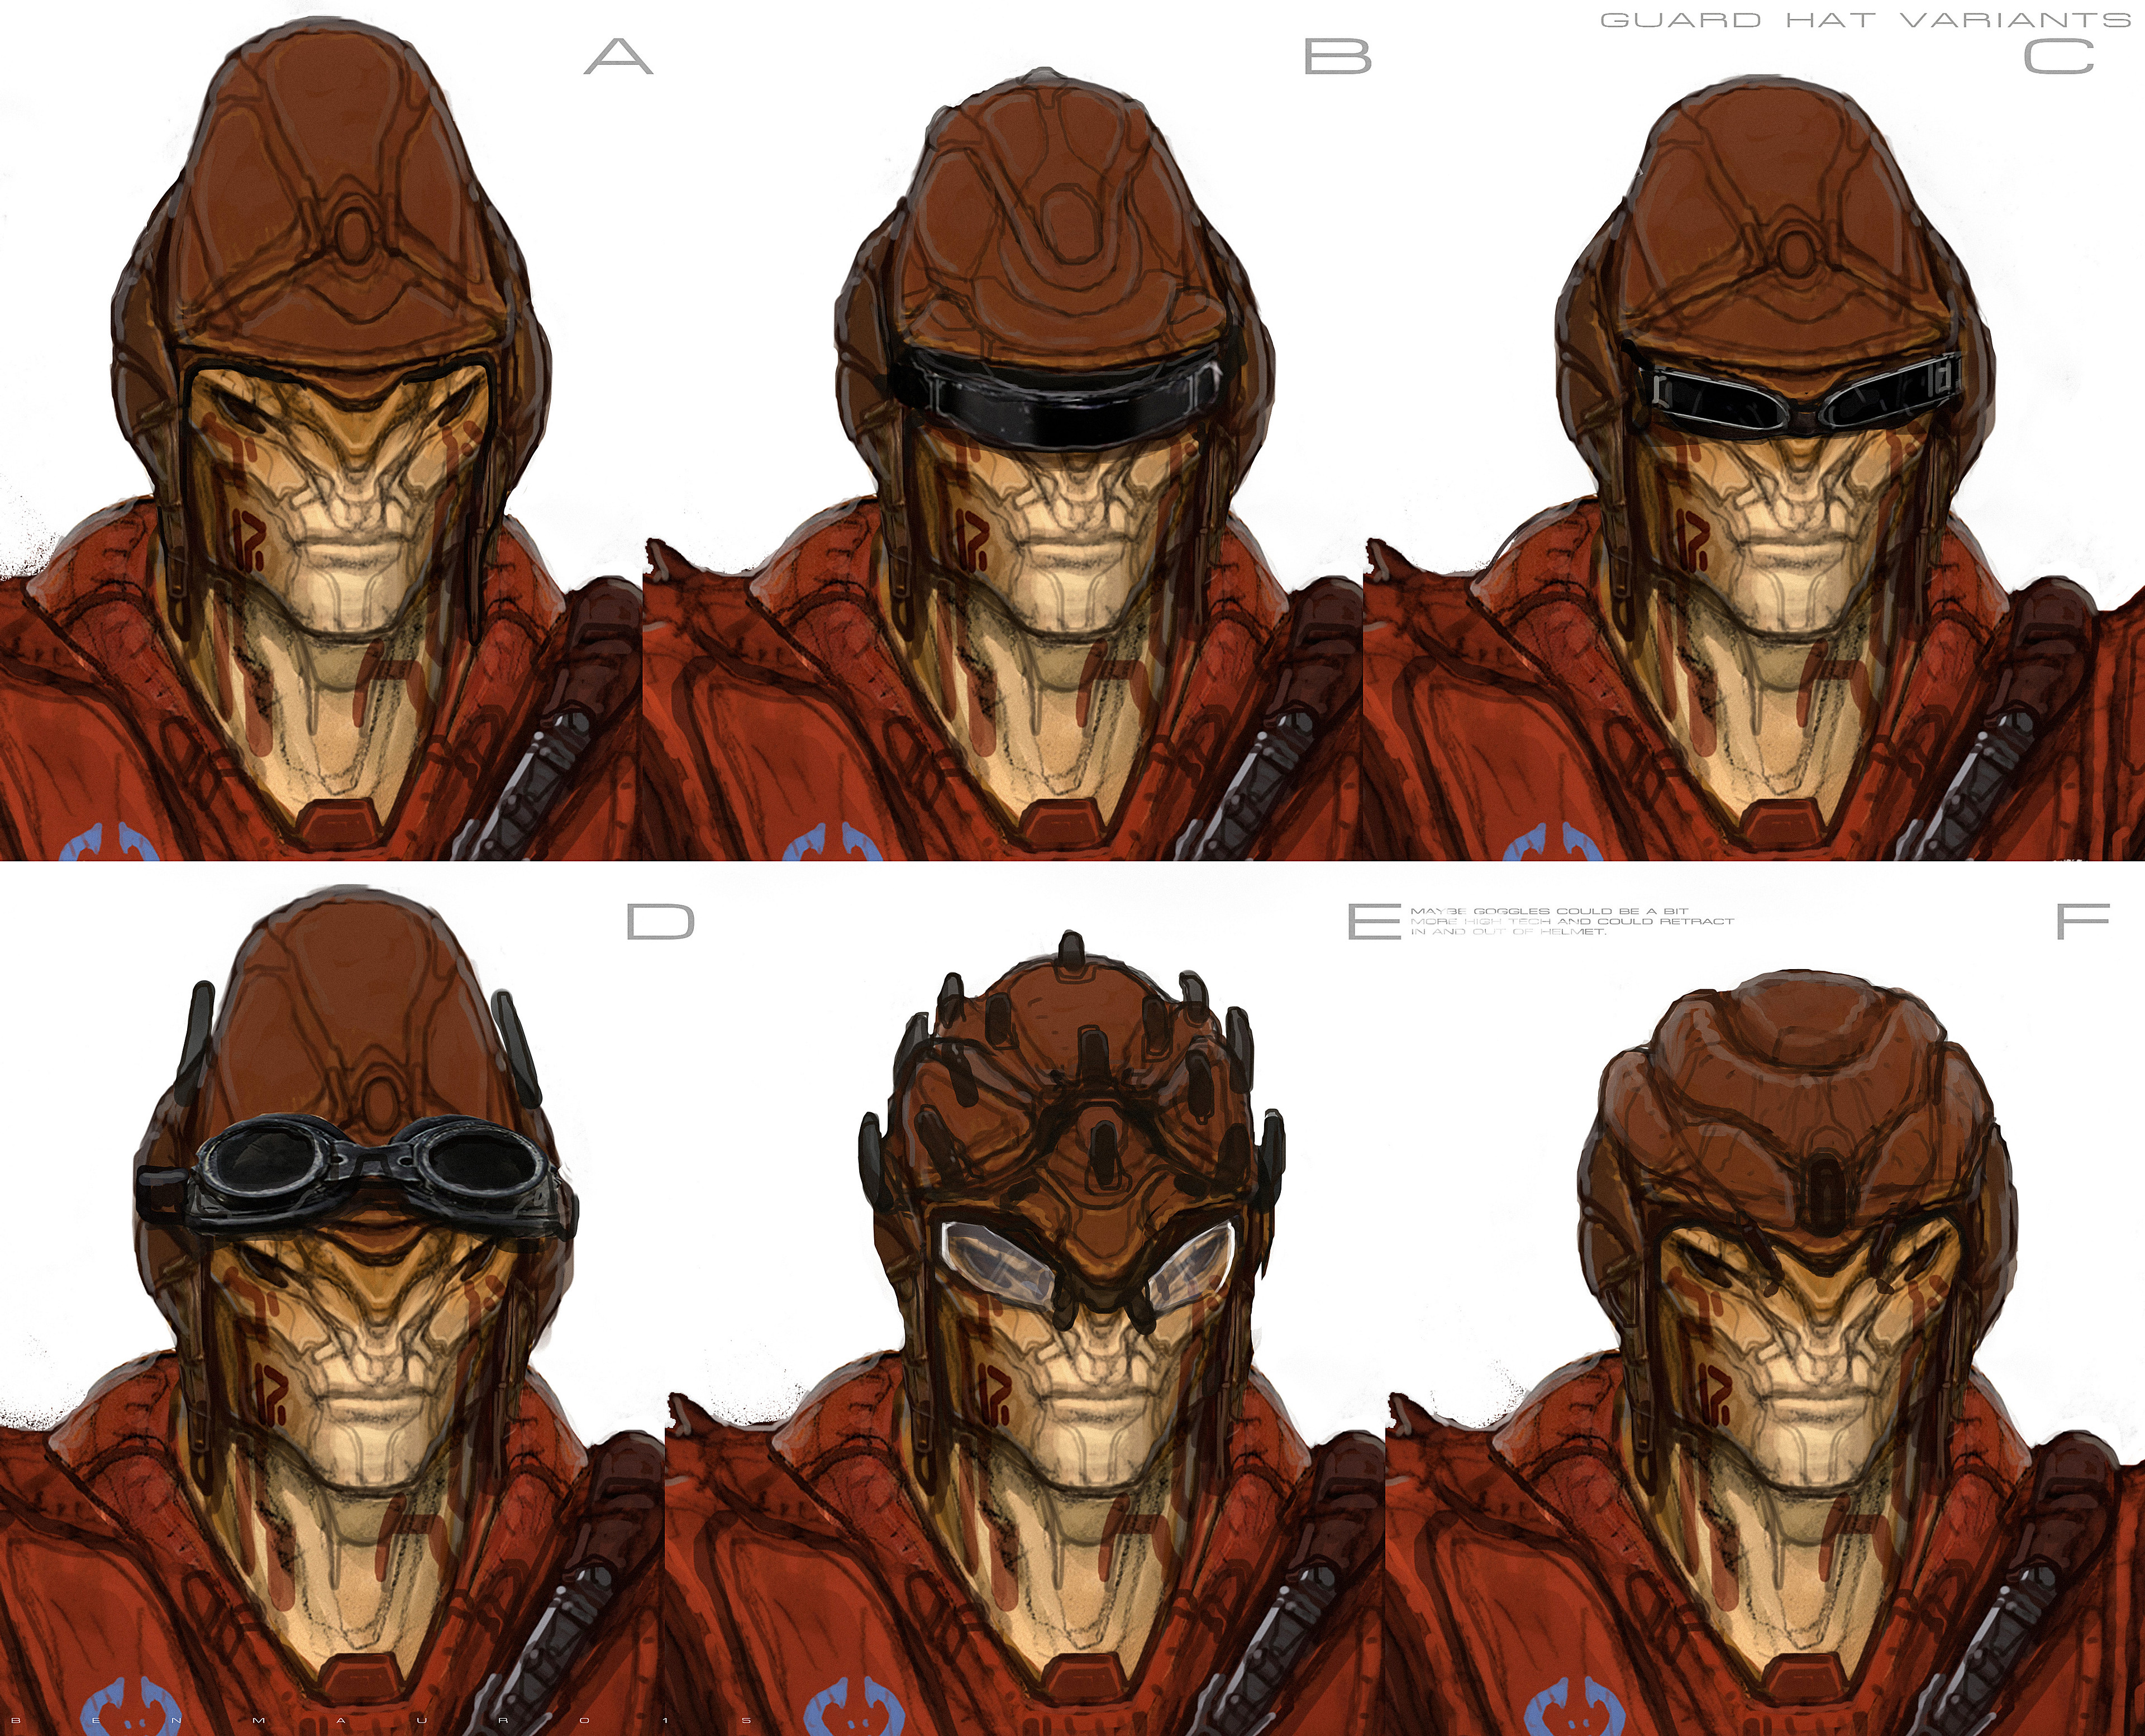 Luc wanted some ideas for hats/goggles. These were done over the early face sketches i did for these characters. They were altered later and adapted to feel more similar in lineage to where Igon Siruss went, less horns/plating like a lizard.